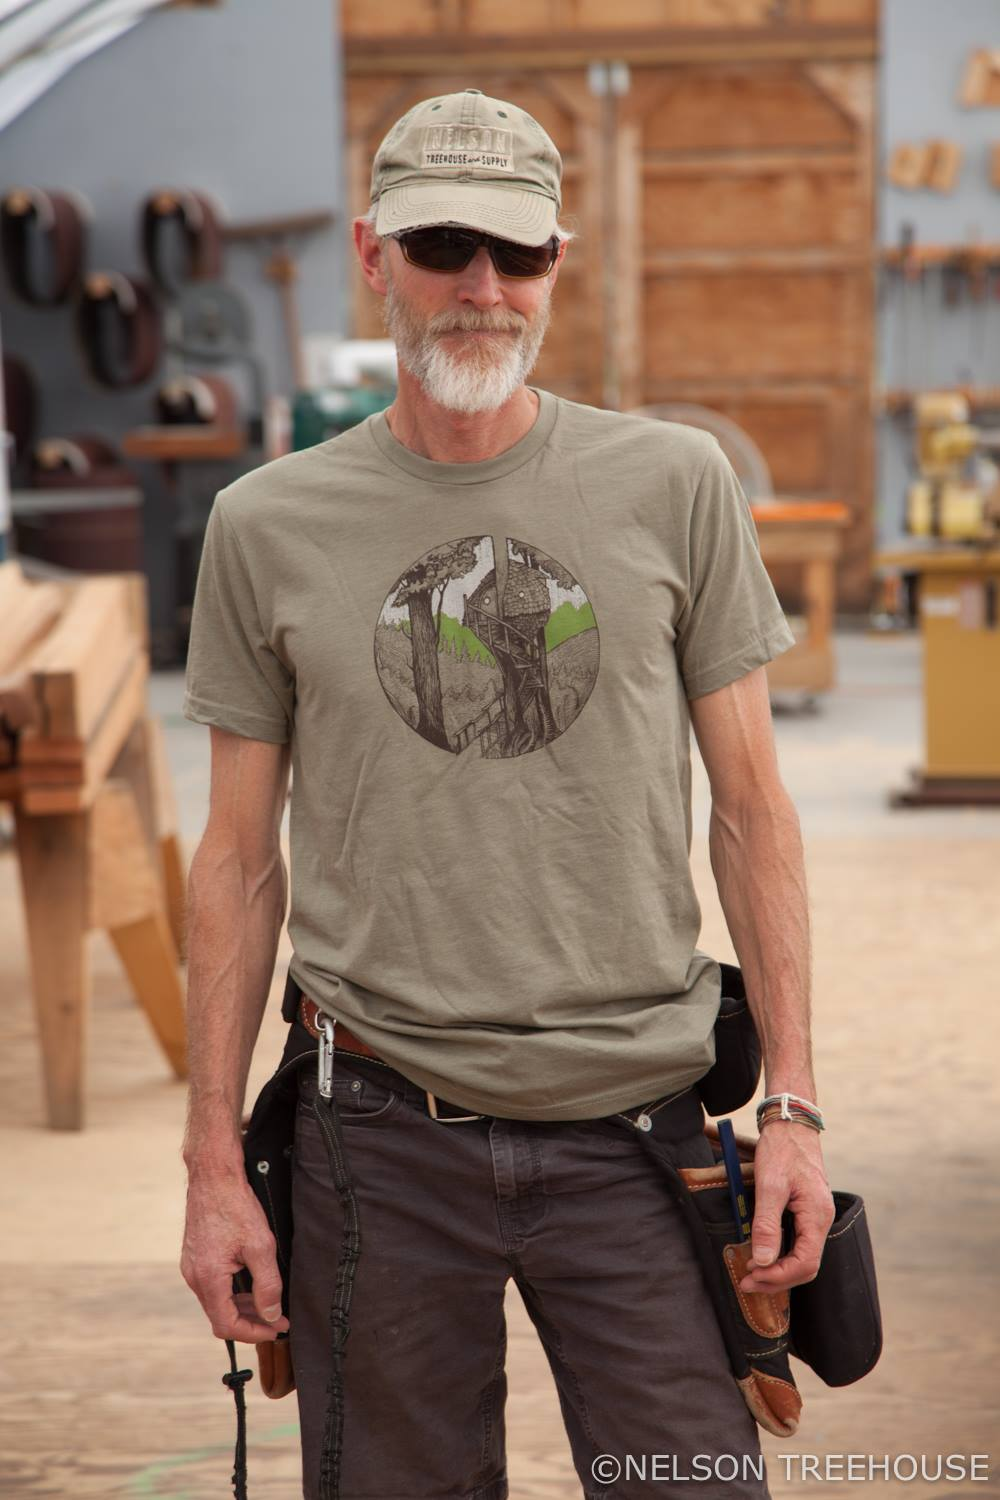 Chuck models our   Beehive Treehouse T-shirt  , printed by Sanctuary Screen Printing